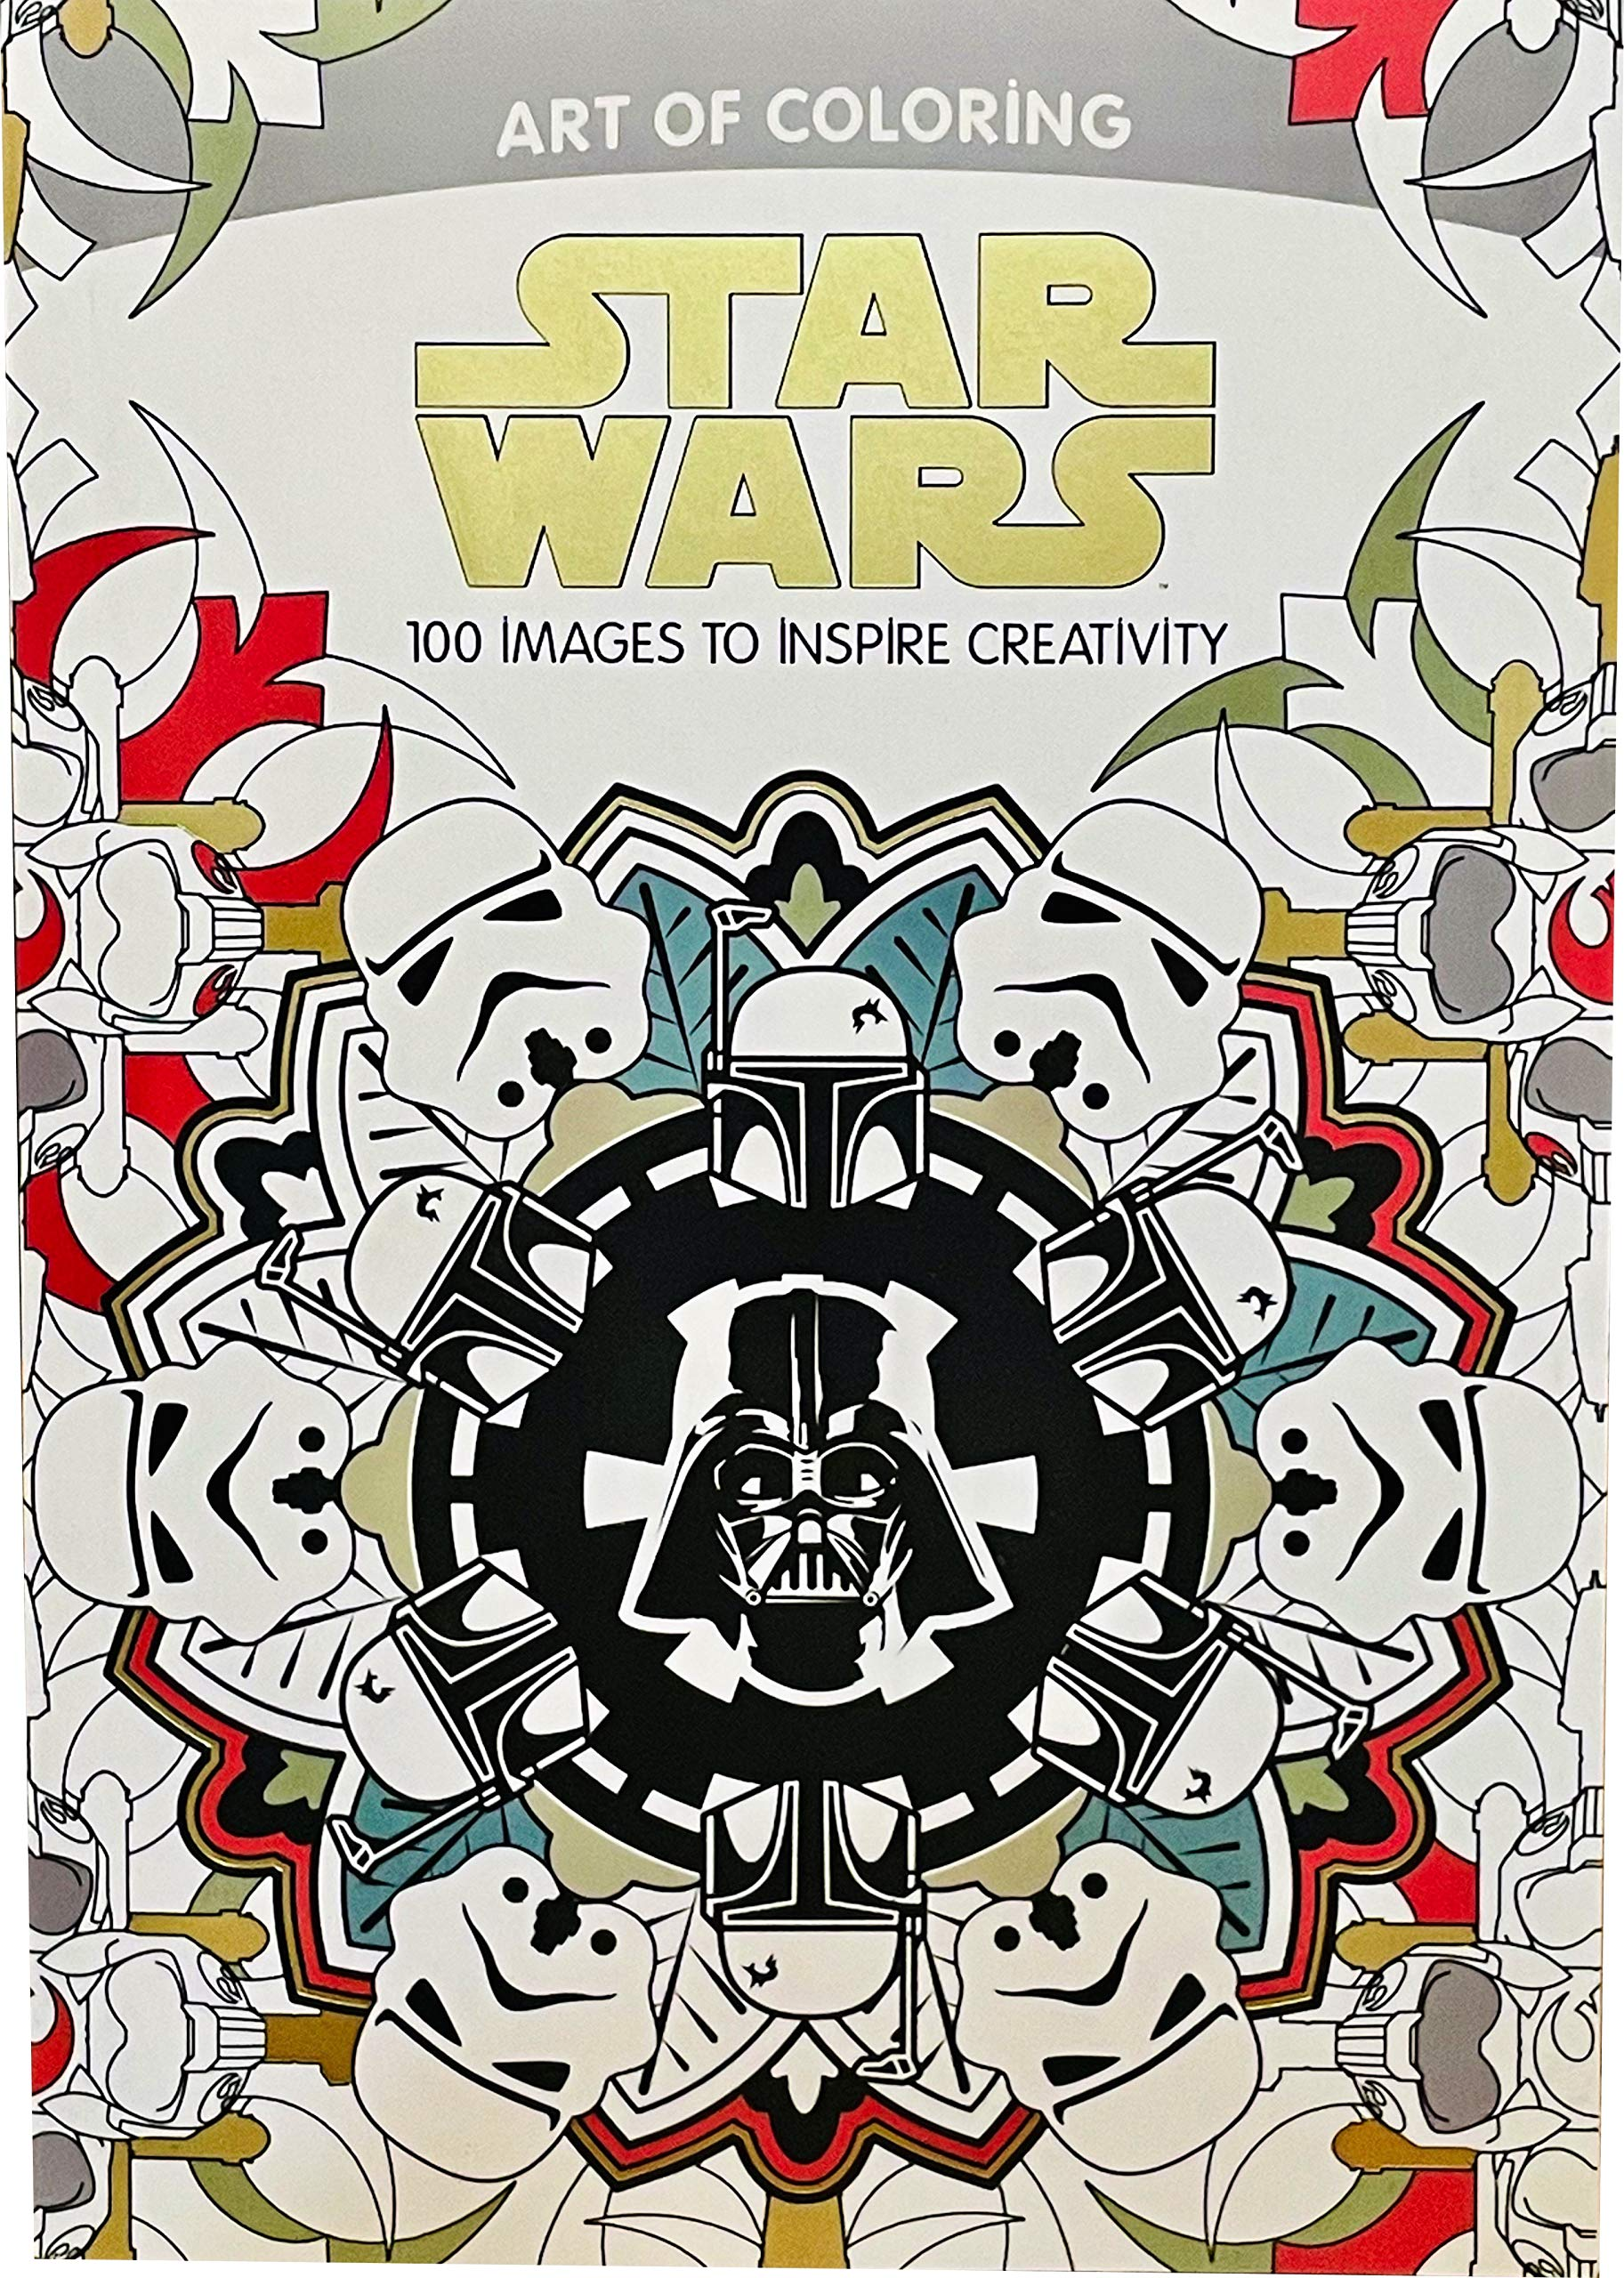 Star Wars Art of Coloring: 100 Images to Inspire Creativity